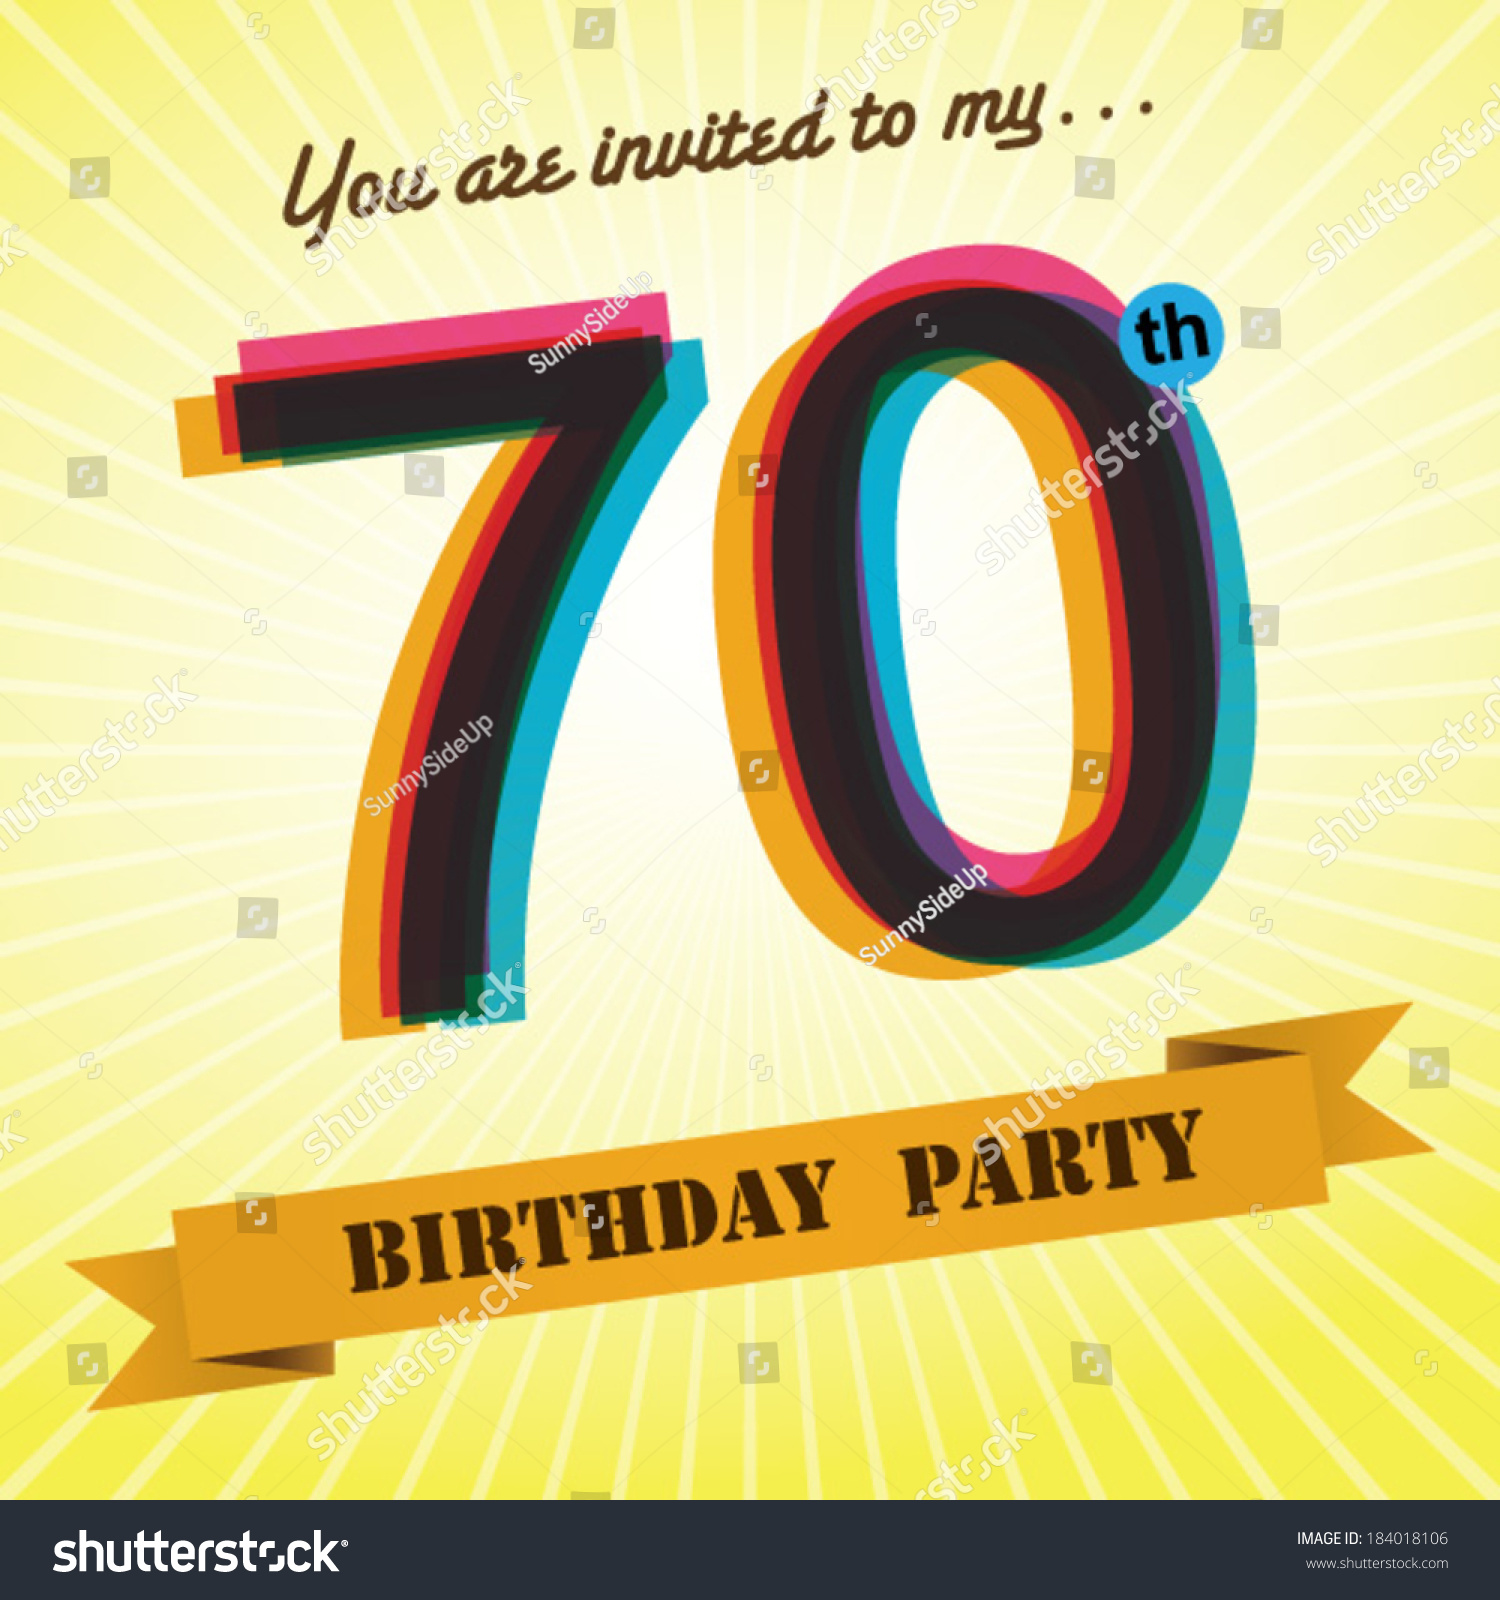 70th birthday party invite template design stock vector royalty 70th birthday party invite template design in retro style vector background filmwisefo